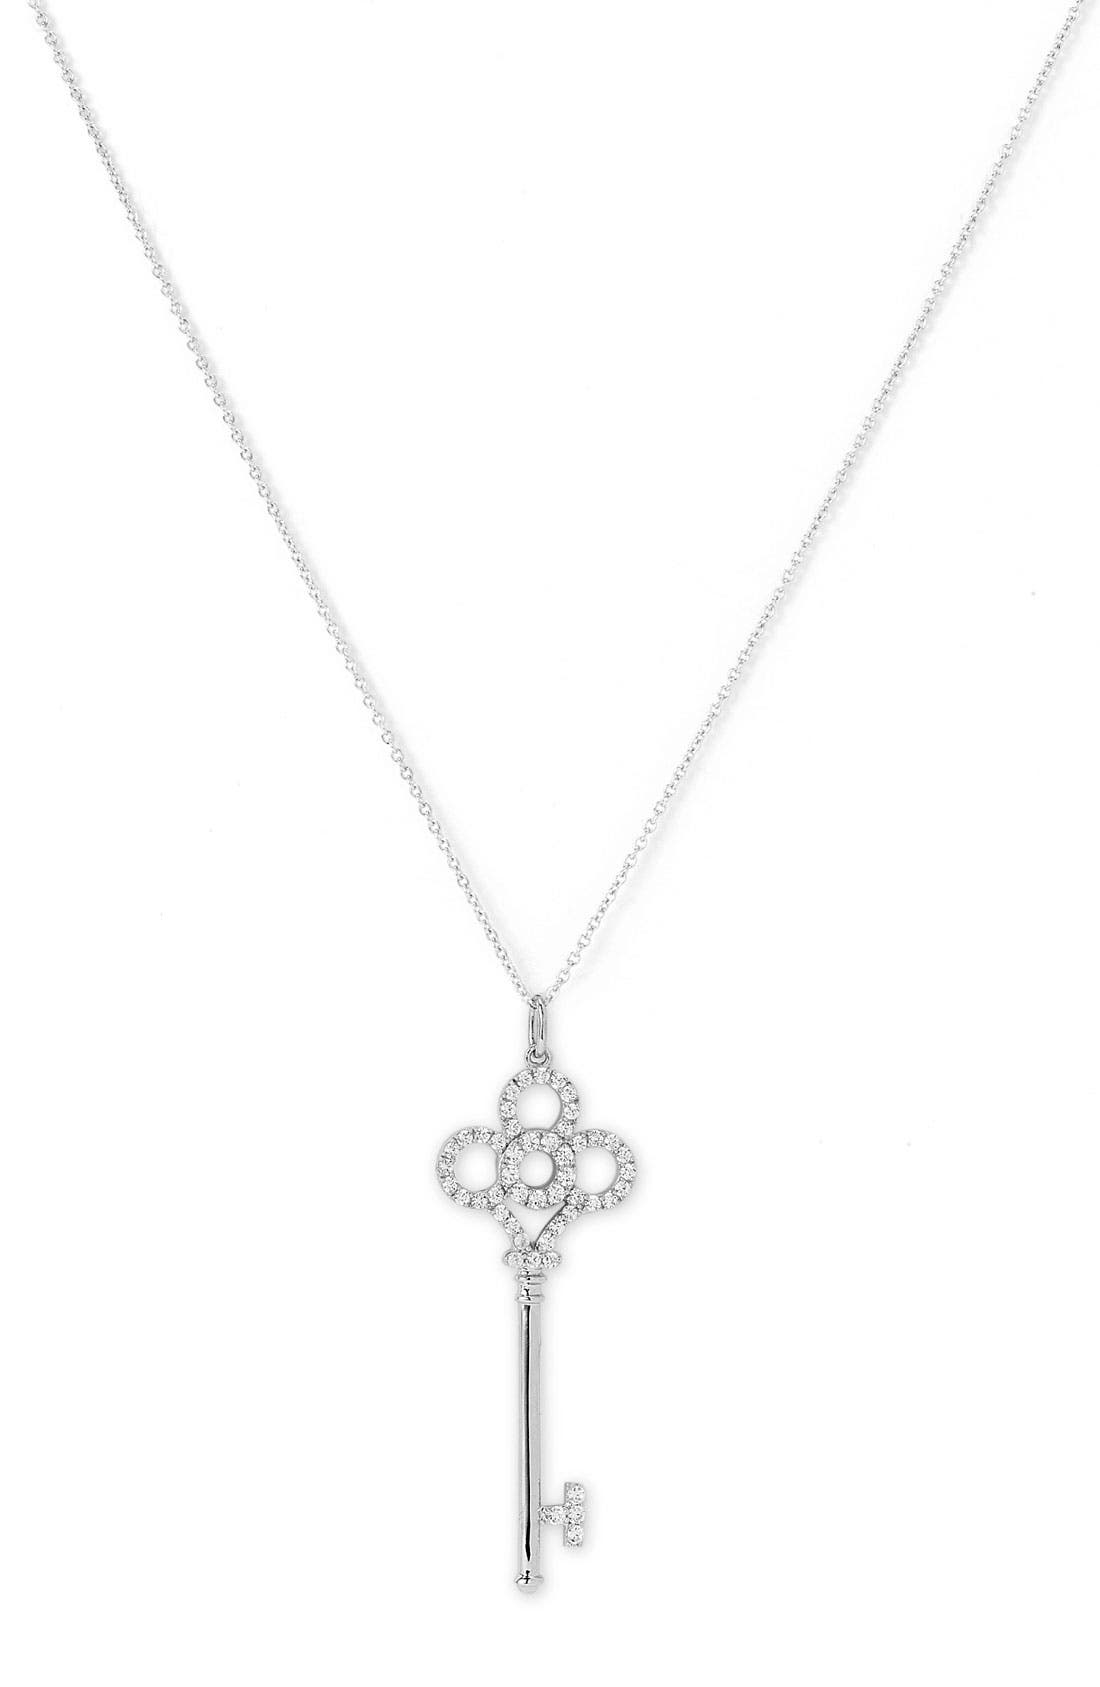 Alternate Image 1 Selected - Nordstrom Key Pendant Necklace